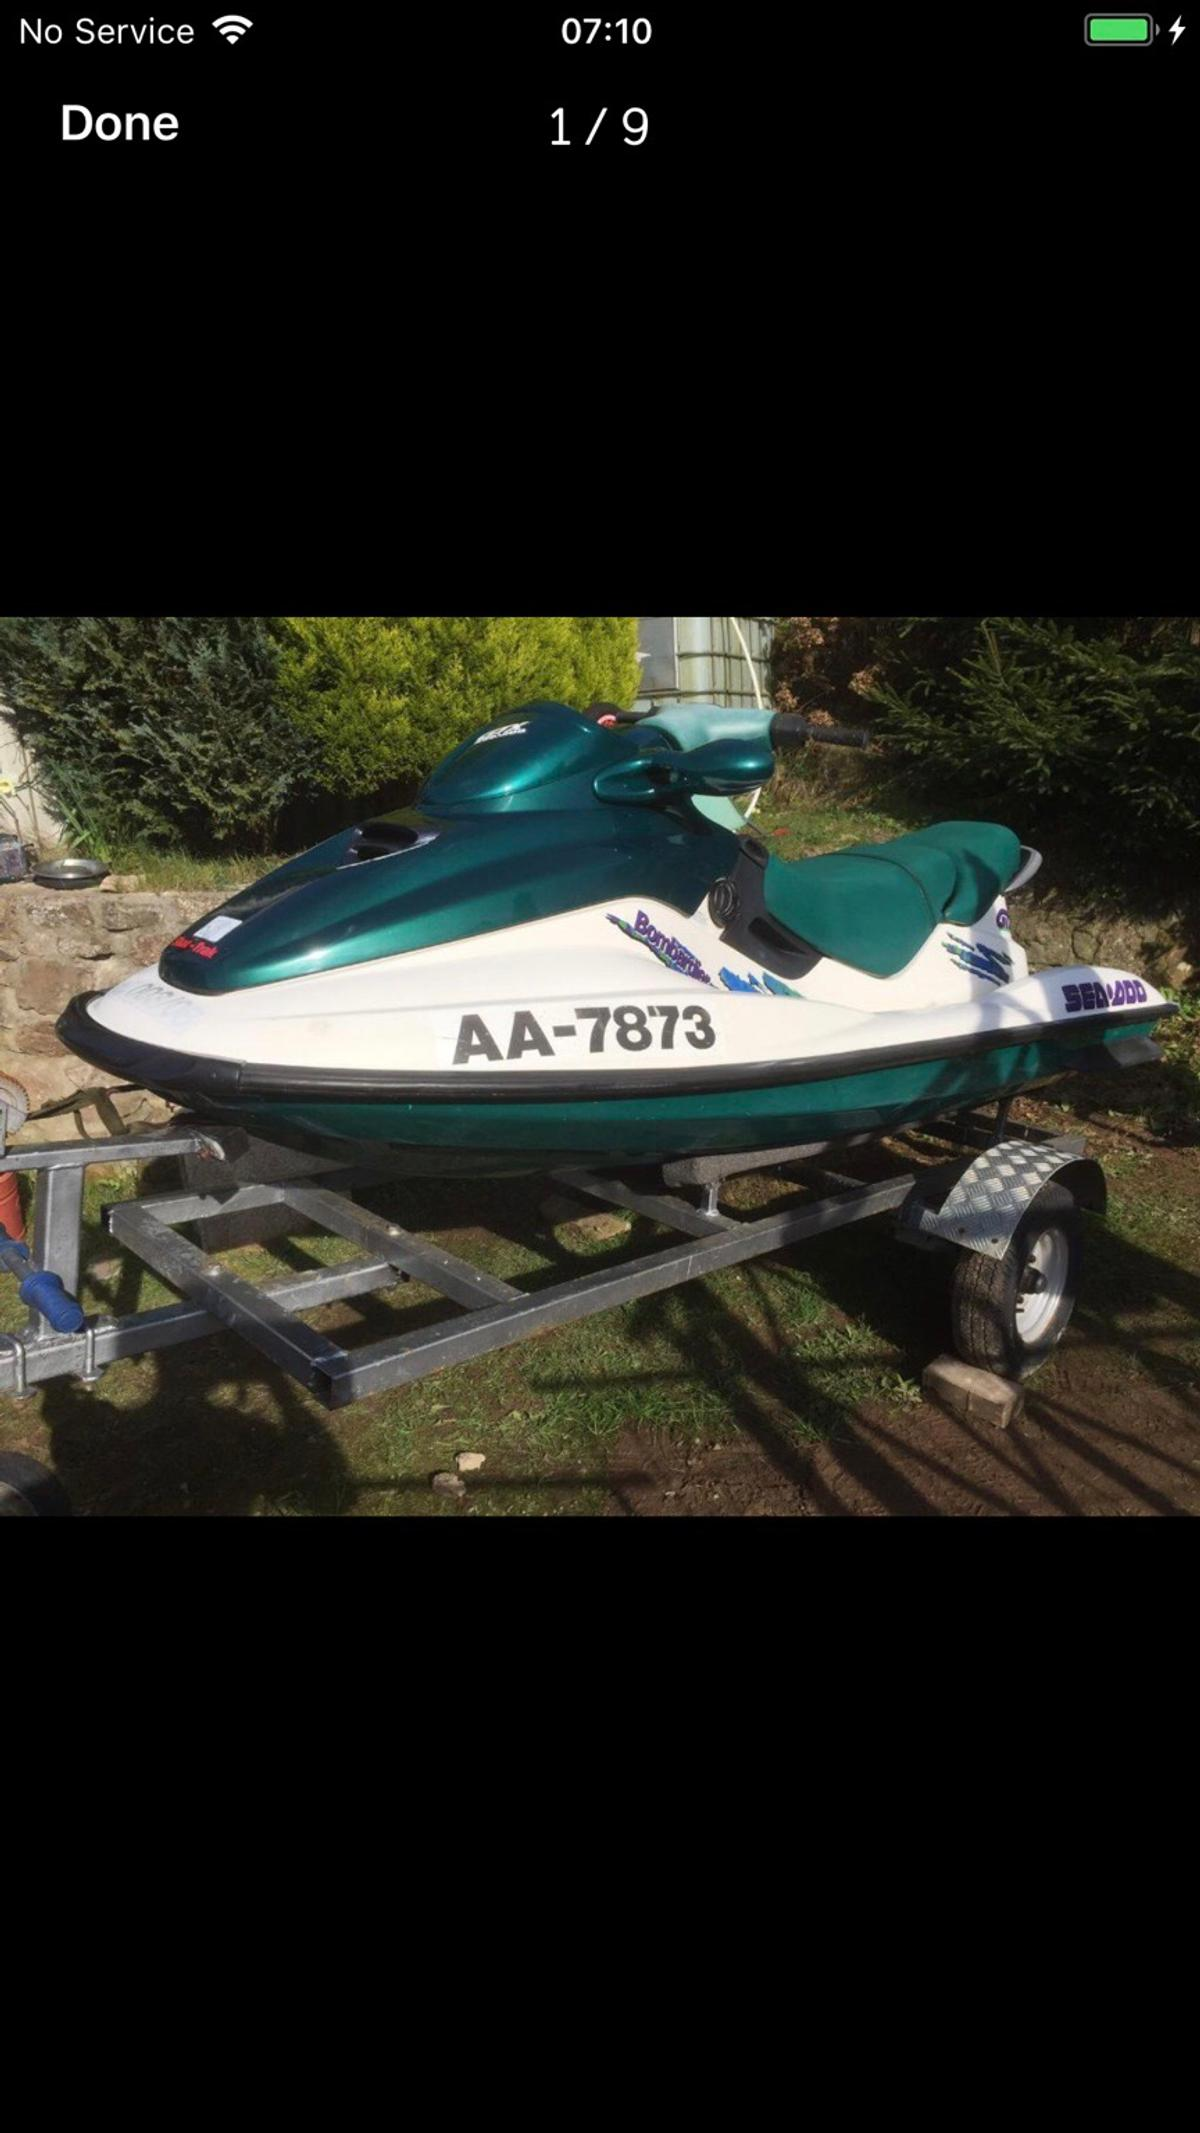 Seadoo project swap for van in NP16 Mynydd-bach for £700 00 for sale